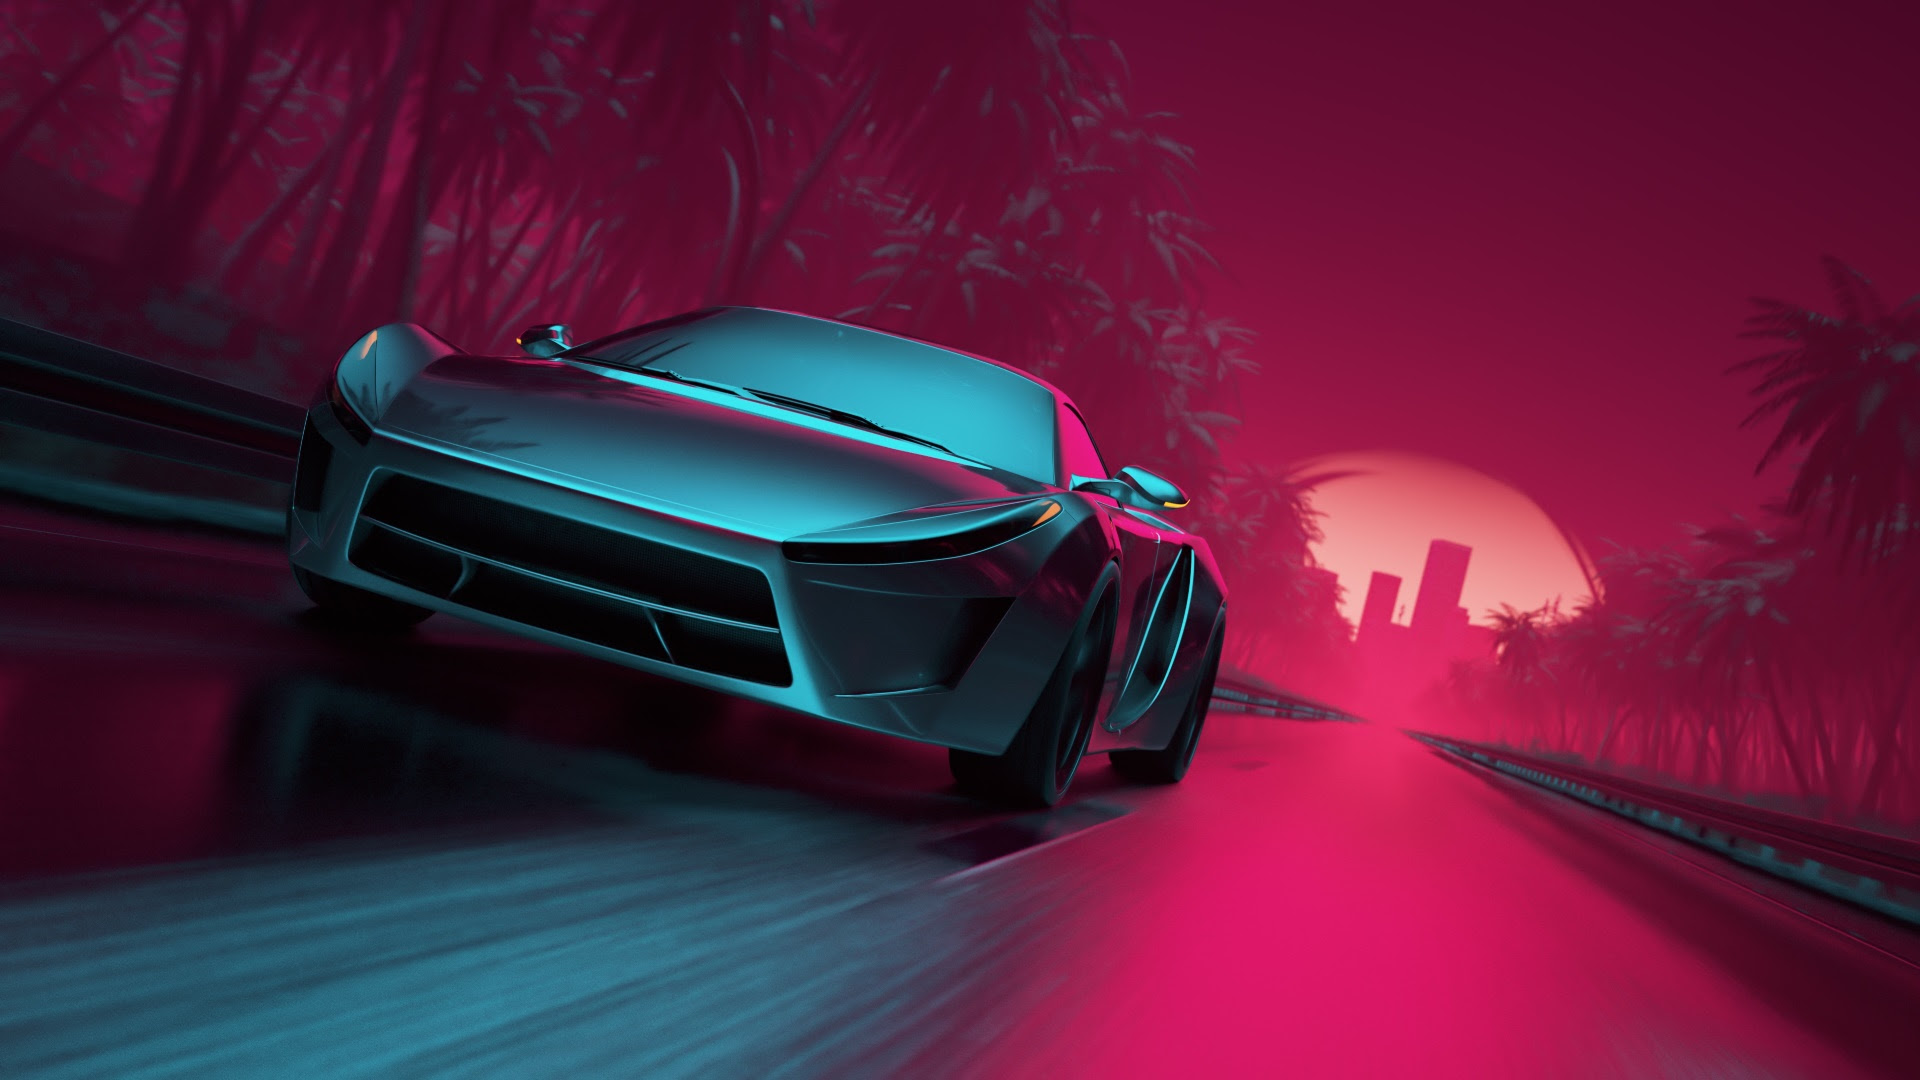 Neon Cars Hd Wallpapers - Best Cars Wallpapers